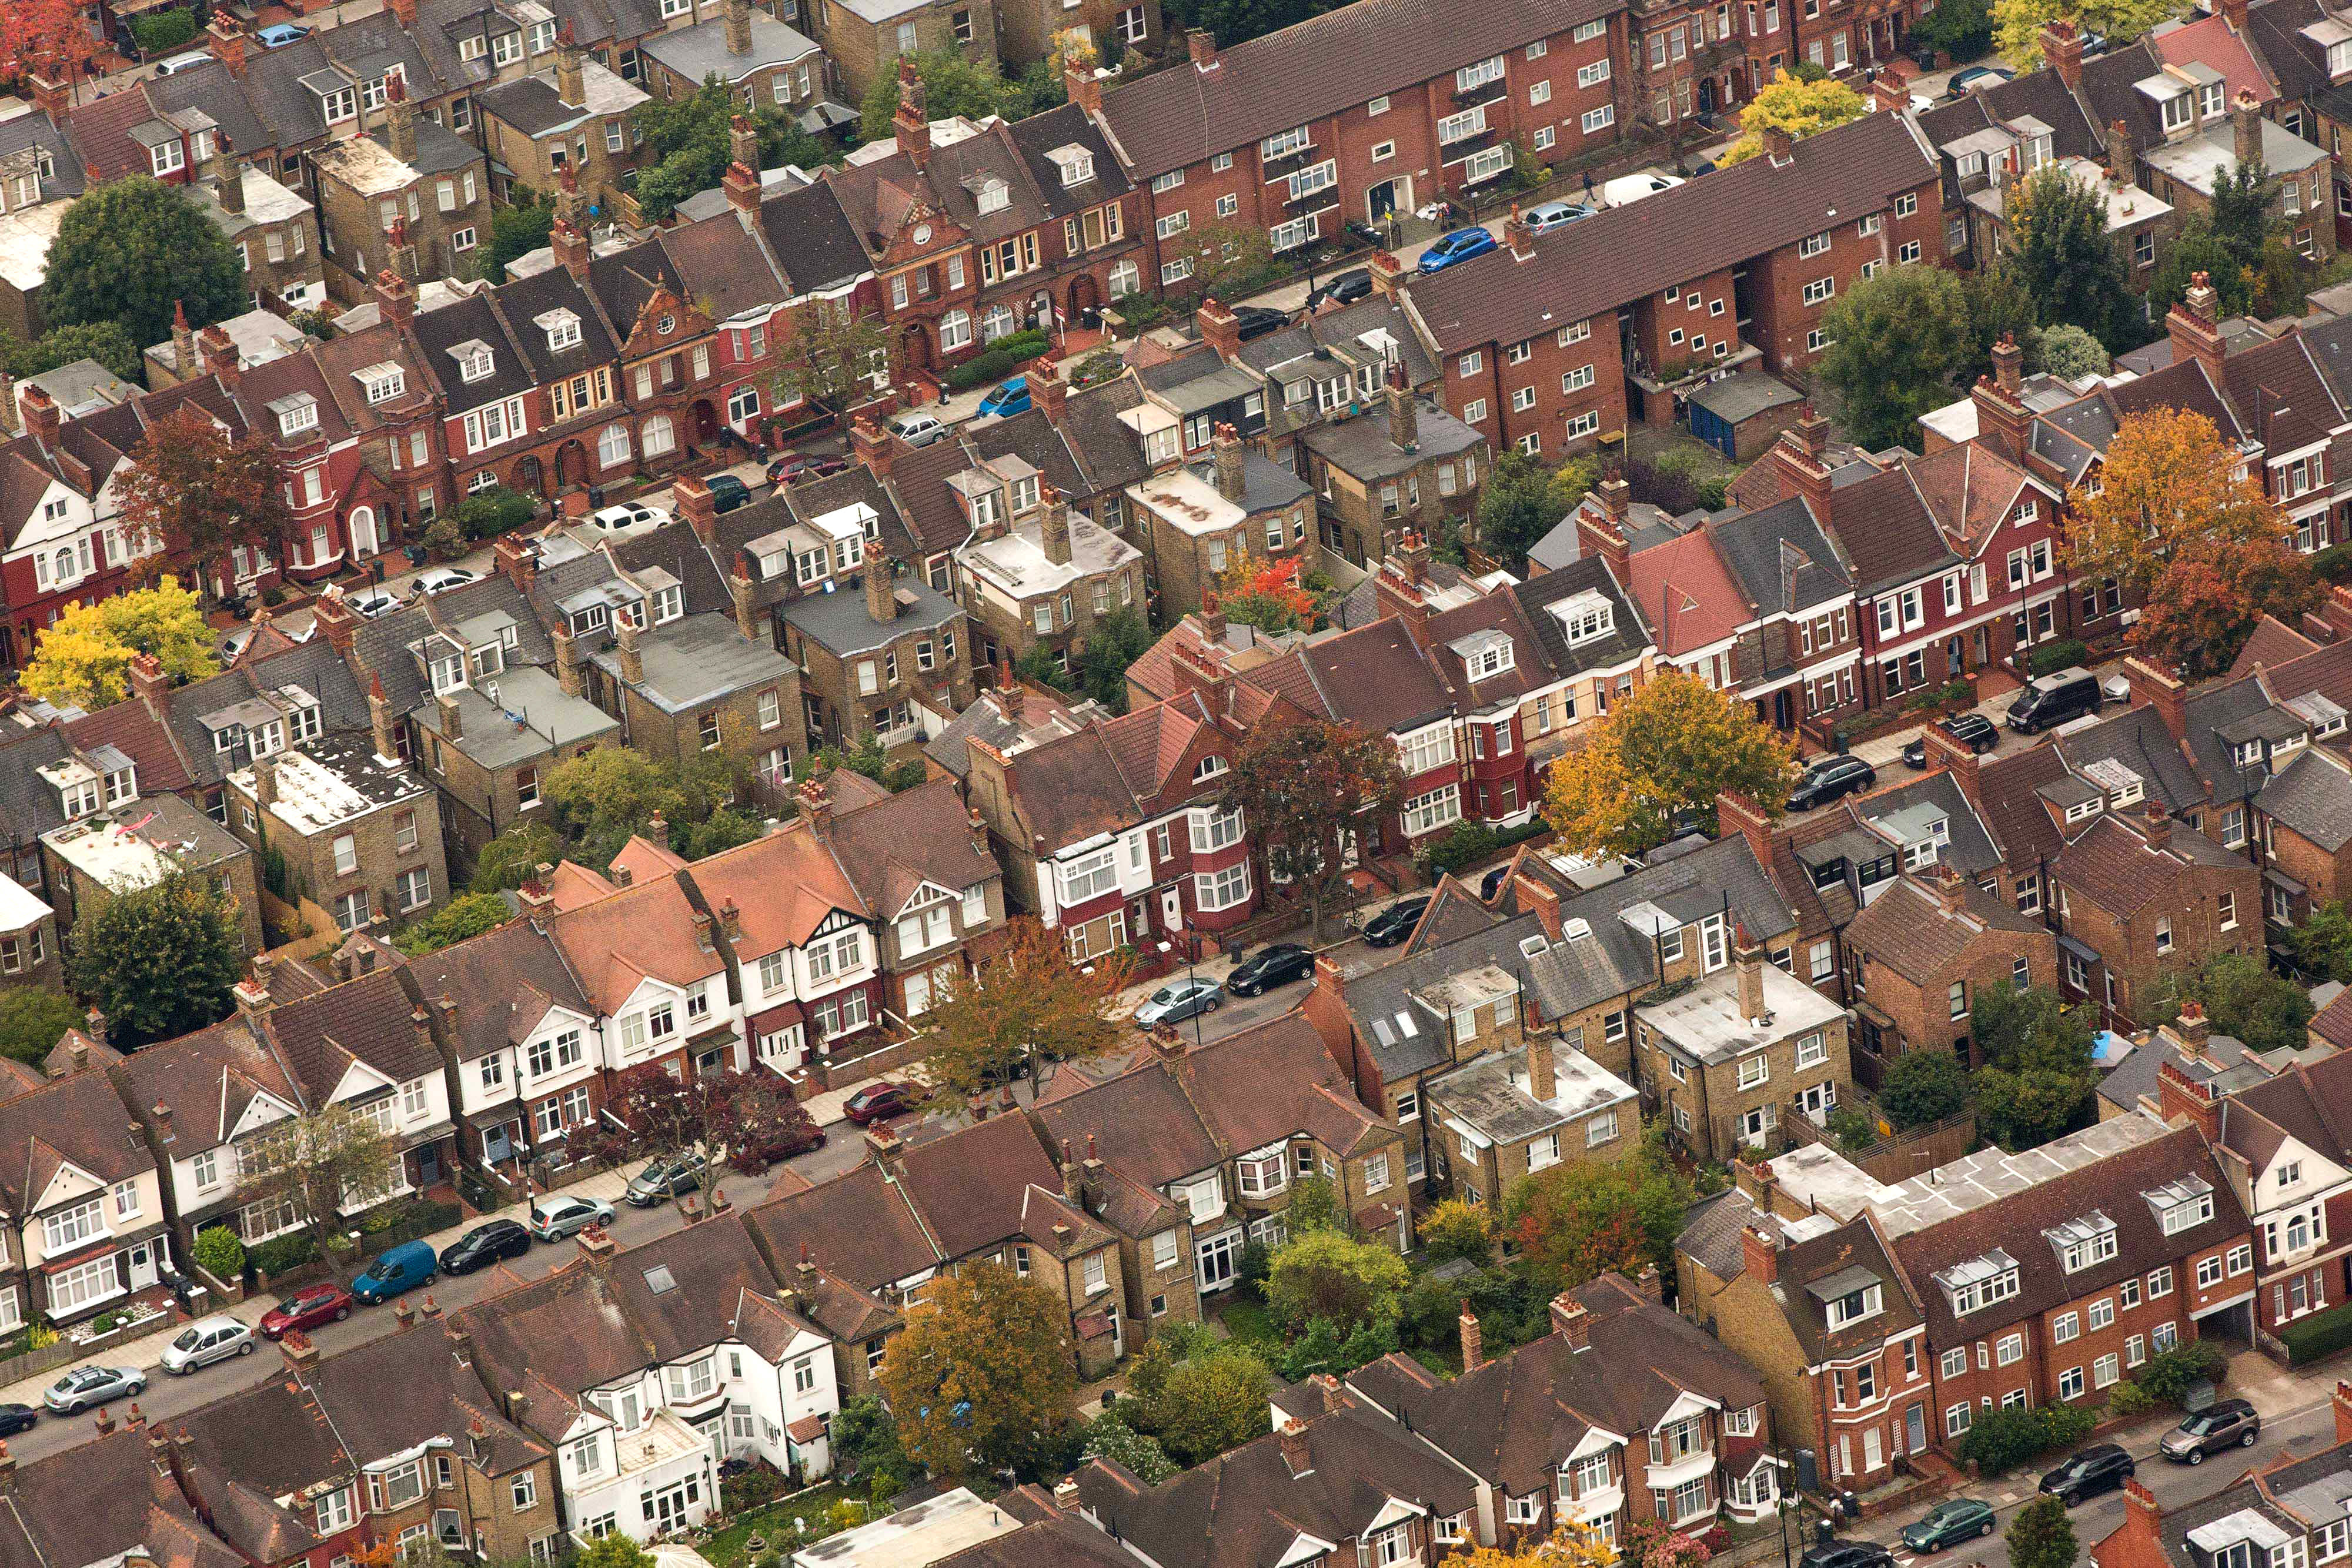 The Nottingham returns to mortgage market